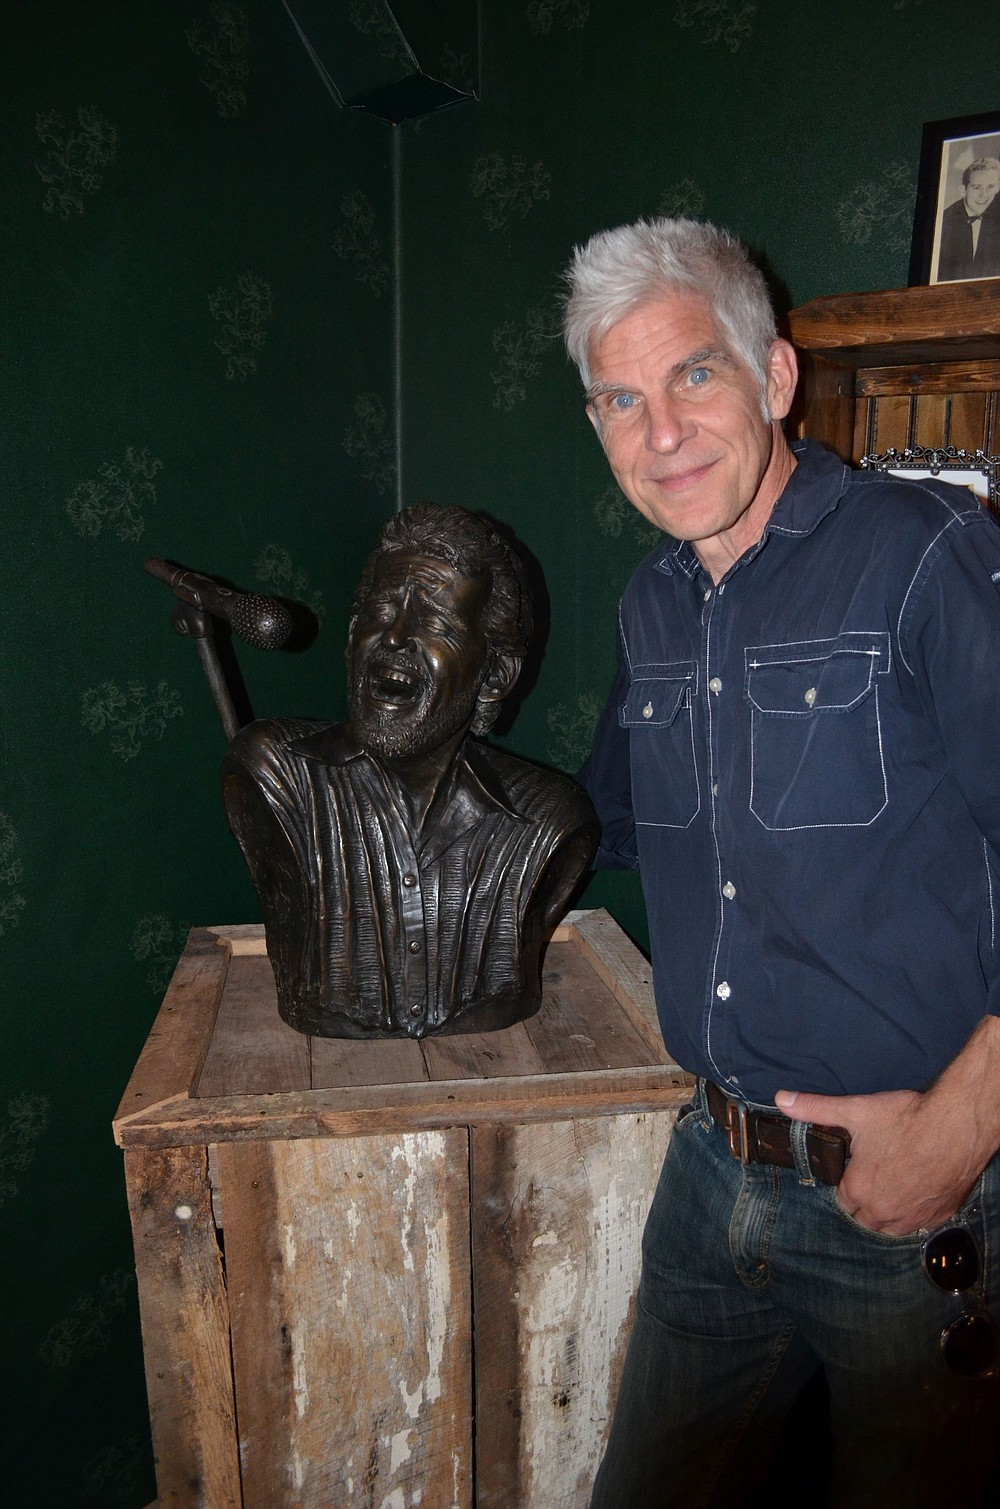 Little Rock sculptor Kevin Kresse stands beside his Levon Helm bronze bust on display at the Levon Helm Memorial Park at Marvell. (Special to The Commercial)